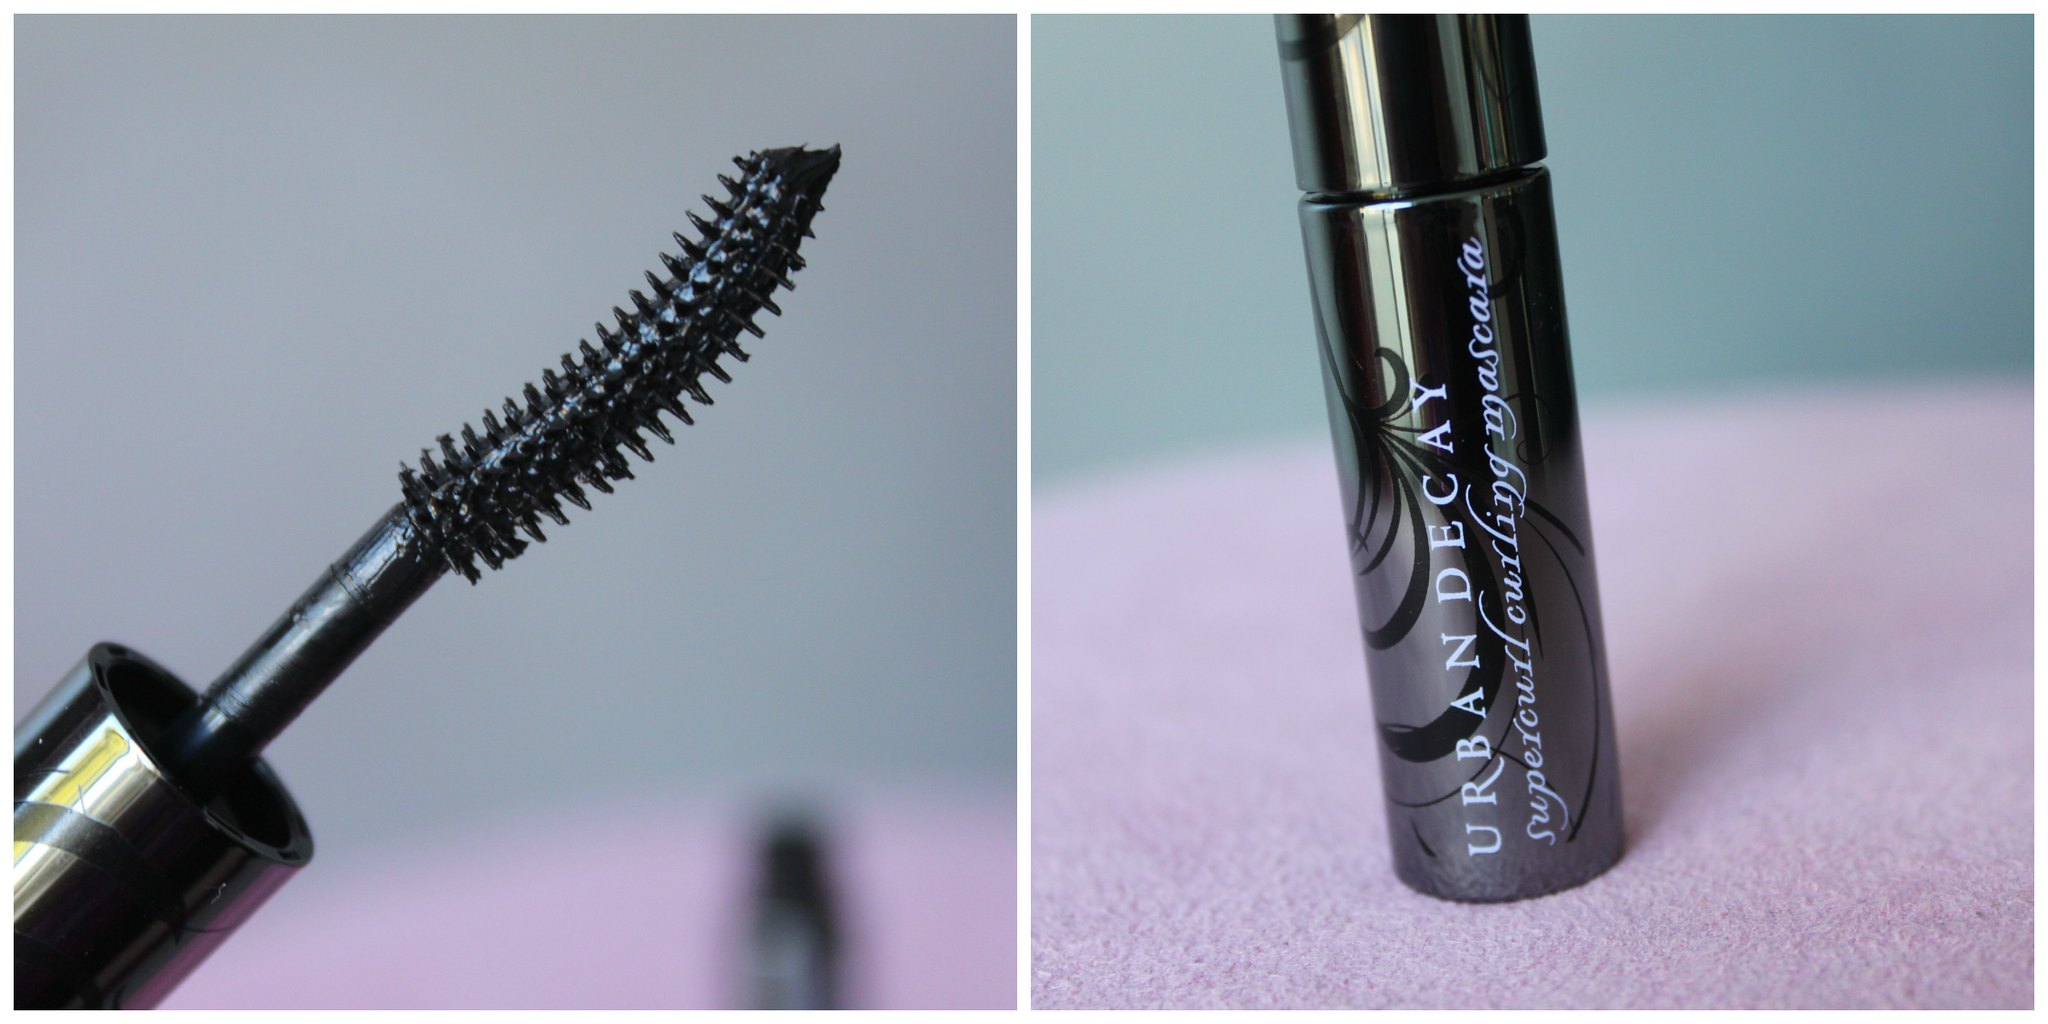 Urban Decay Super Curling Mascara Australian Beauty Review blog blogger ausbeautyreview aussie mecca maxima makeup cosmetics black ud